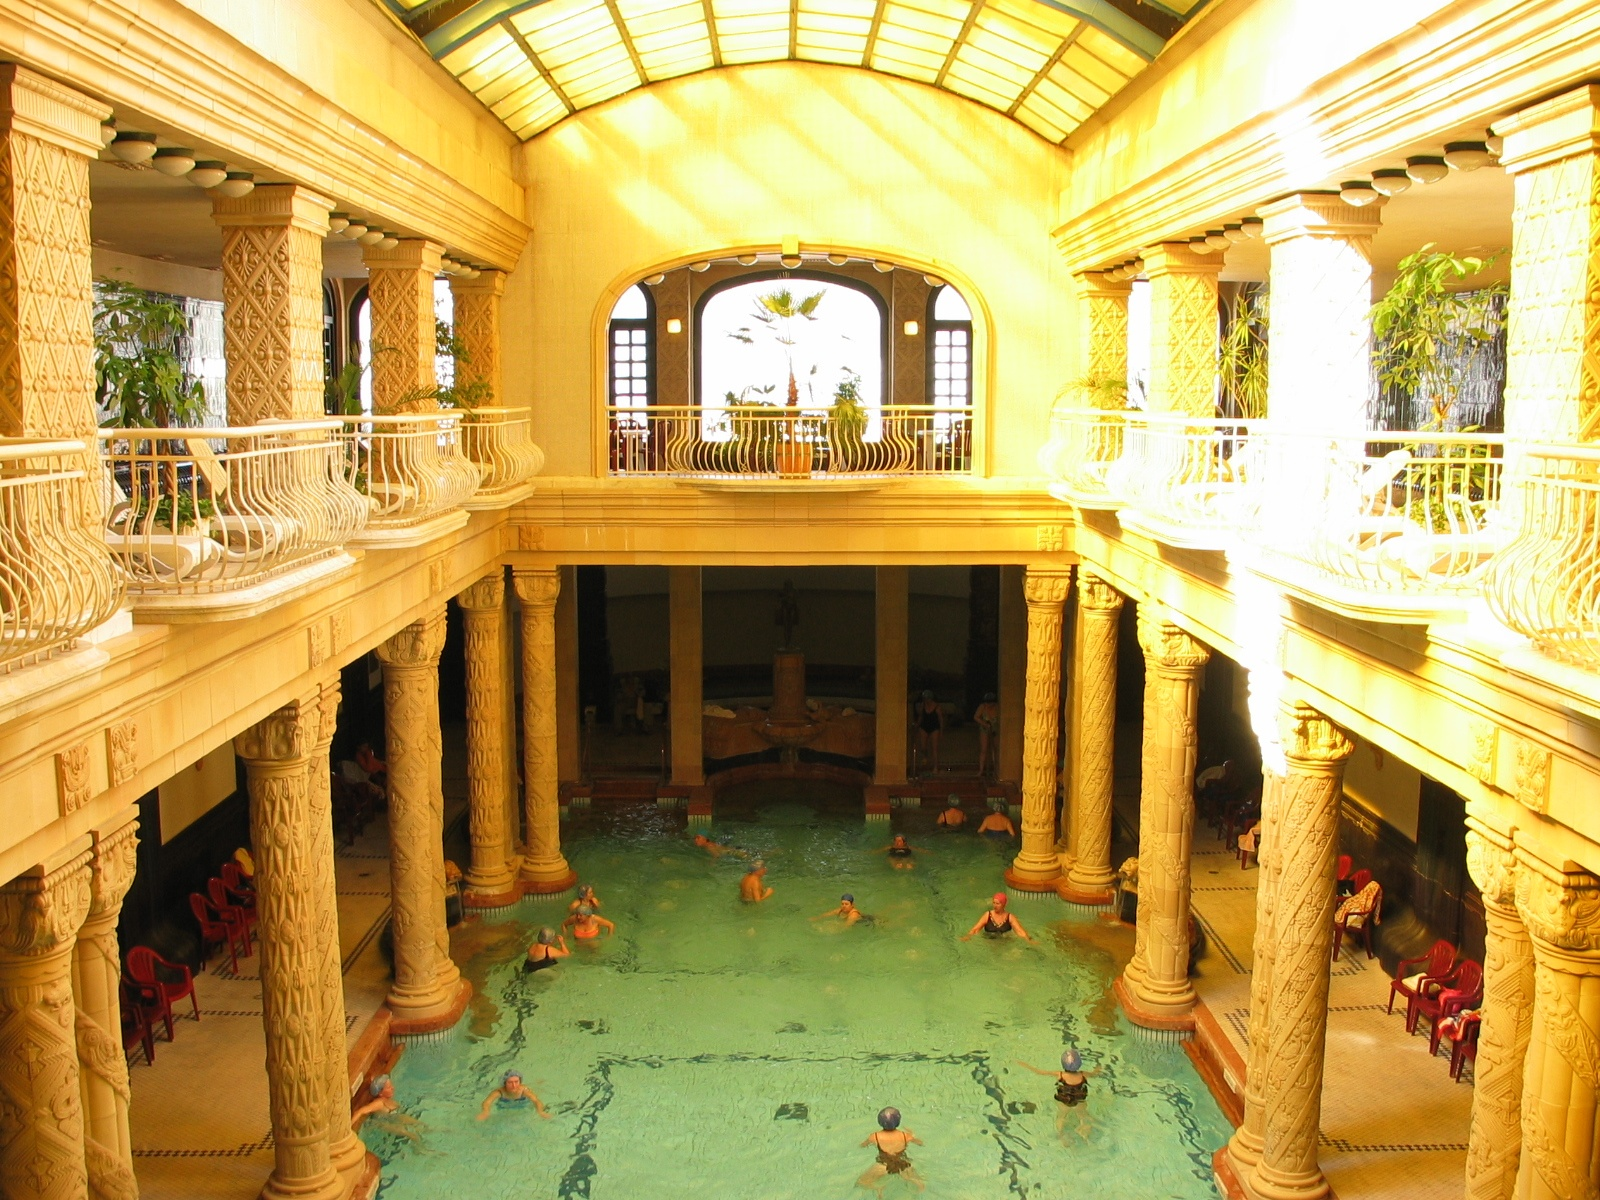 Most Expensive Pools In The World - Gellert Thermal BathsMost Expensive Pools In The World - Gellert Thermal Baths